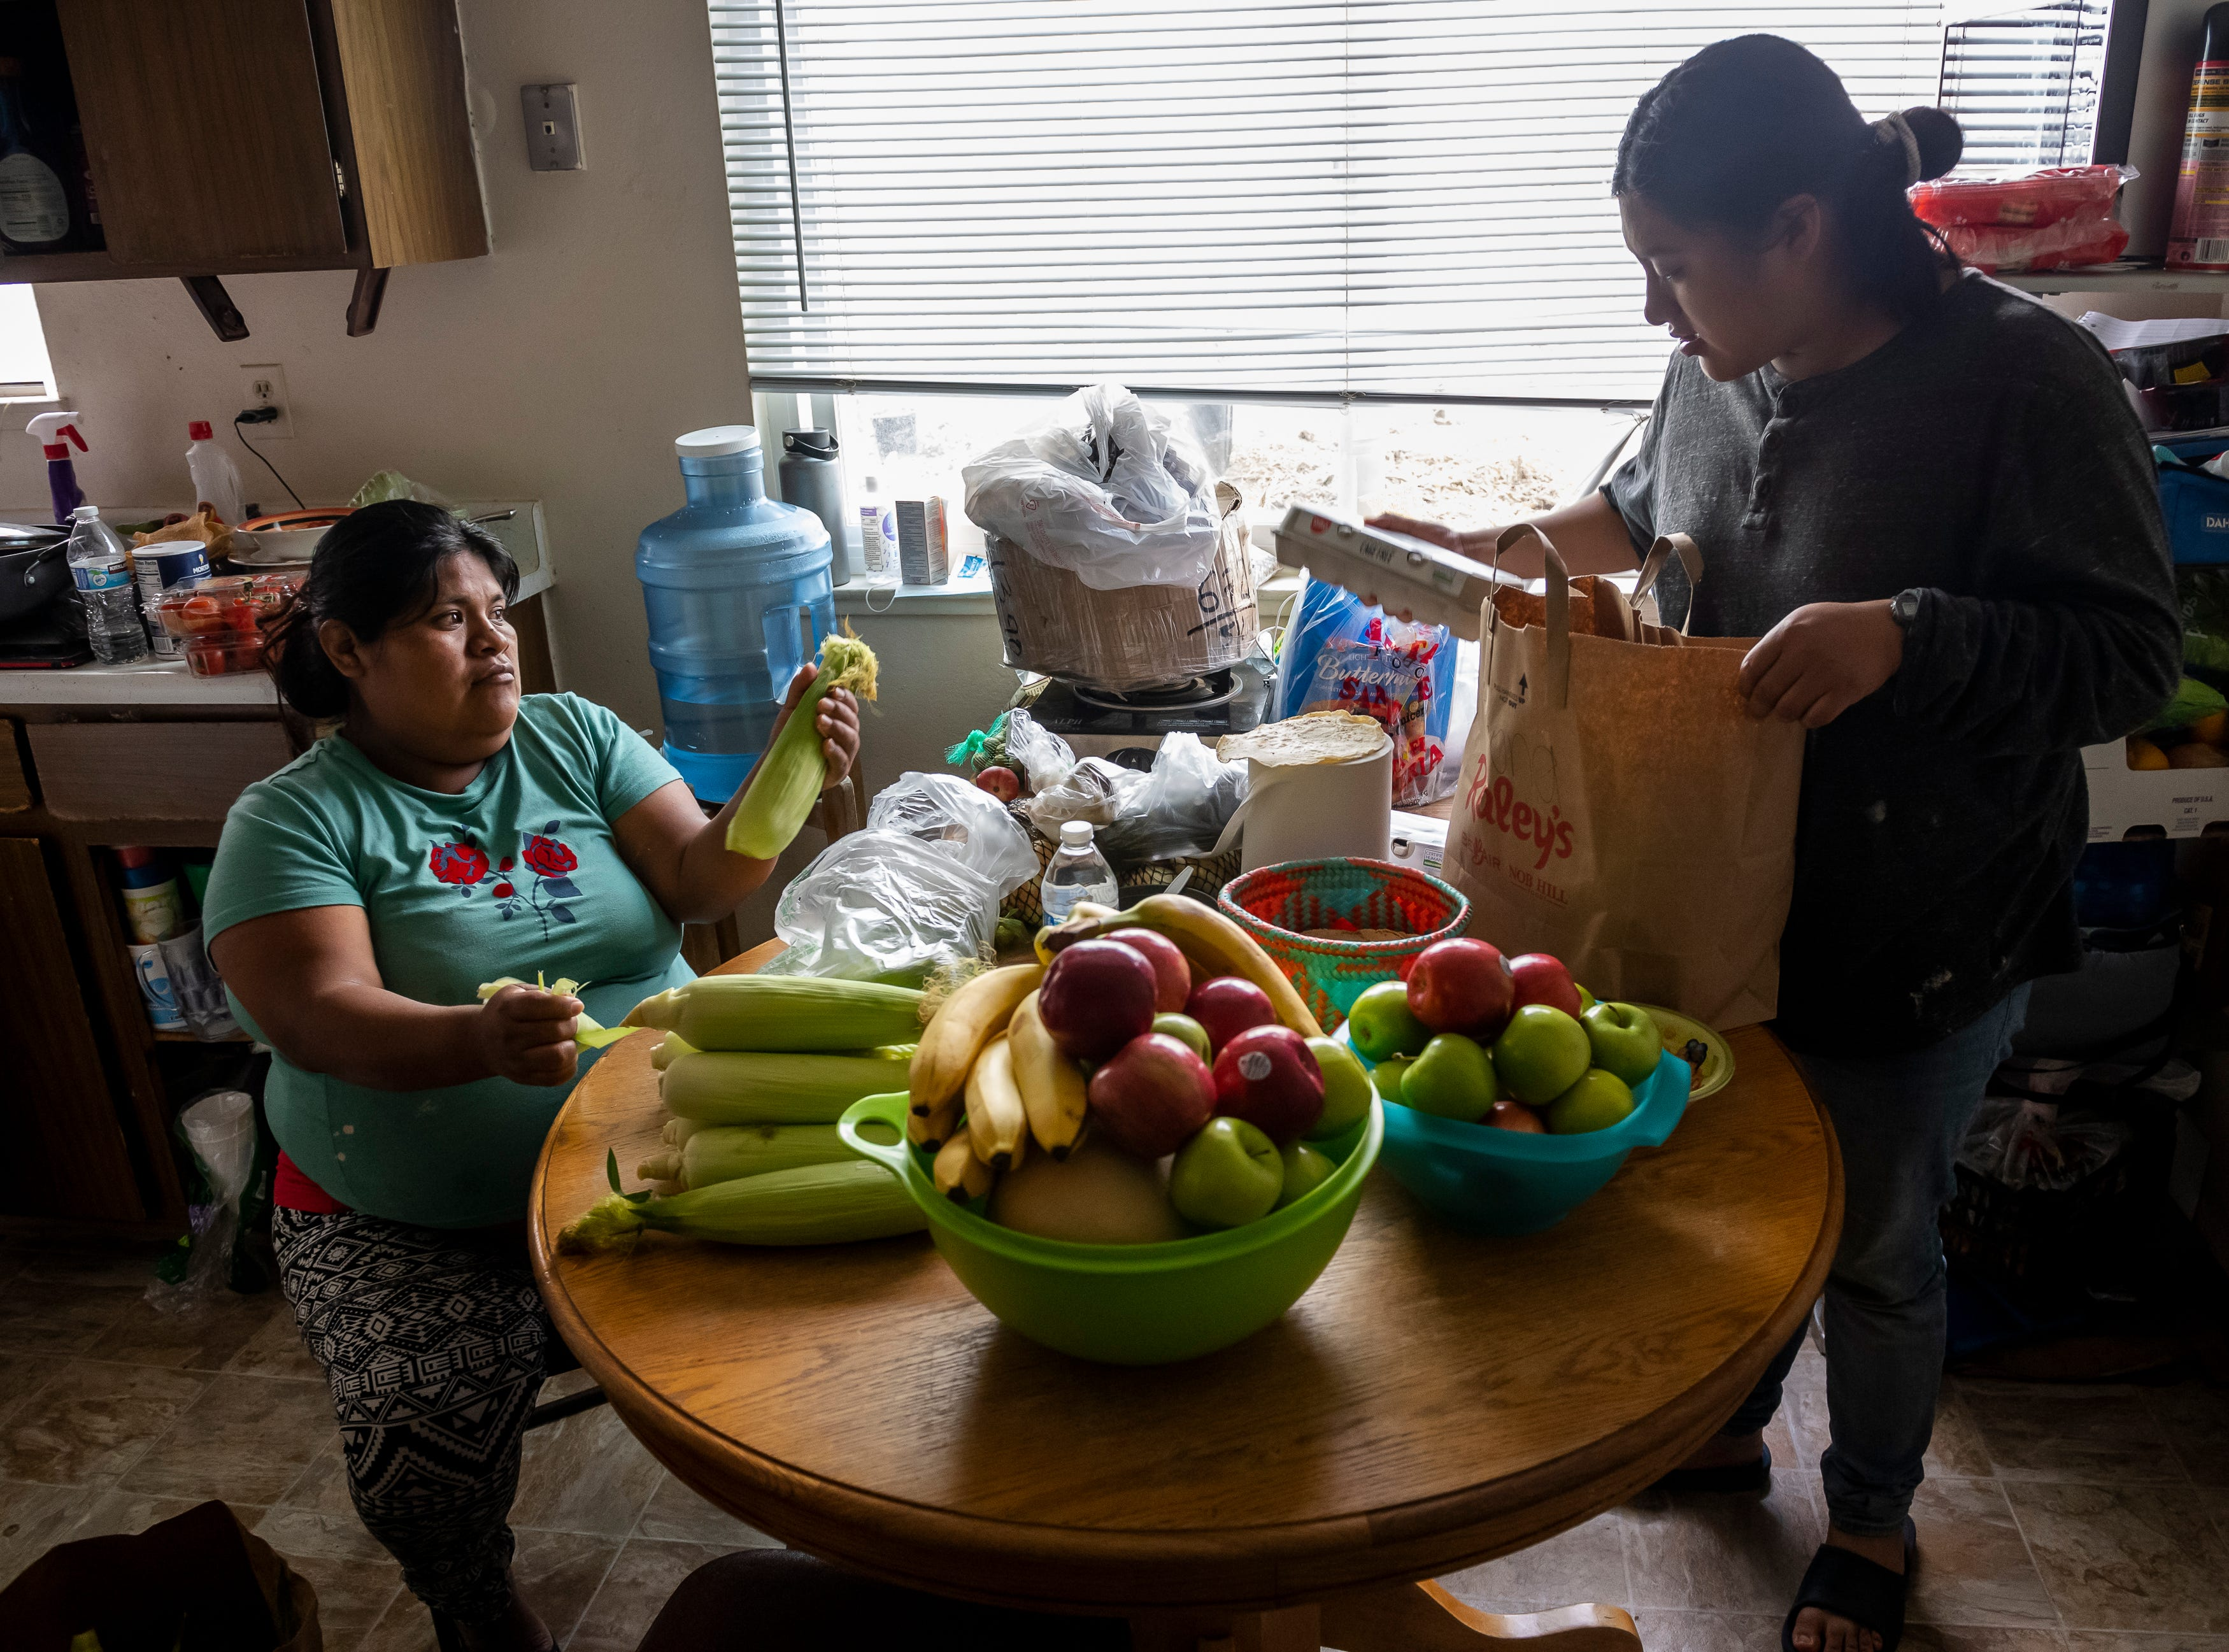 Constanza Aguilar, 35, shucks corn as she helps her stepdaughter, Resi Salvador, empty out all the bags of donated groceries inside the two-bedroom apartment that she rents with her family in north Salinas, Calif., on Saturday, July 18, 2020.